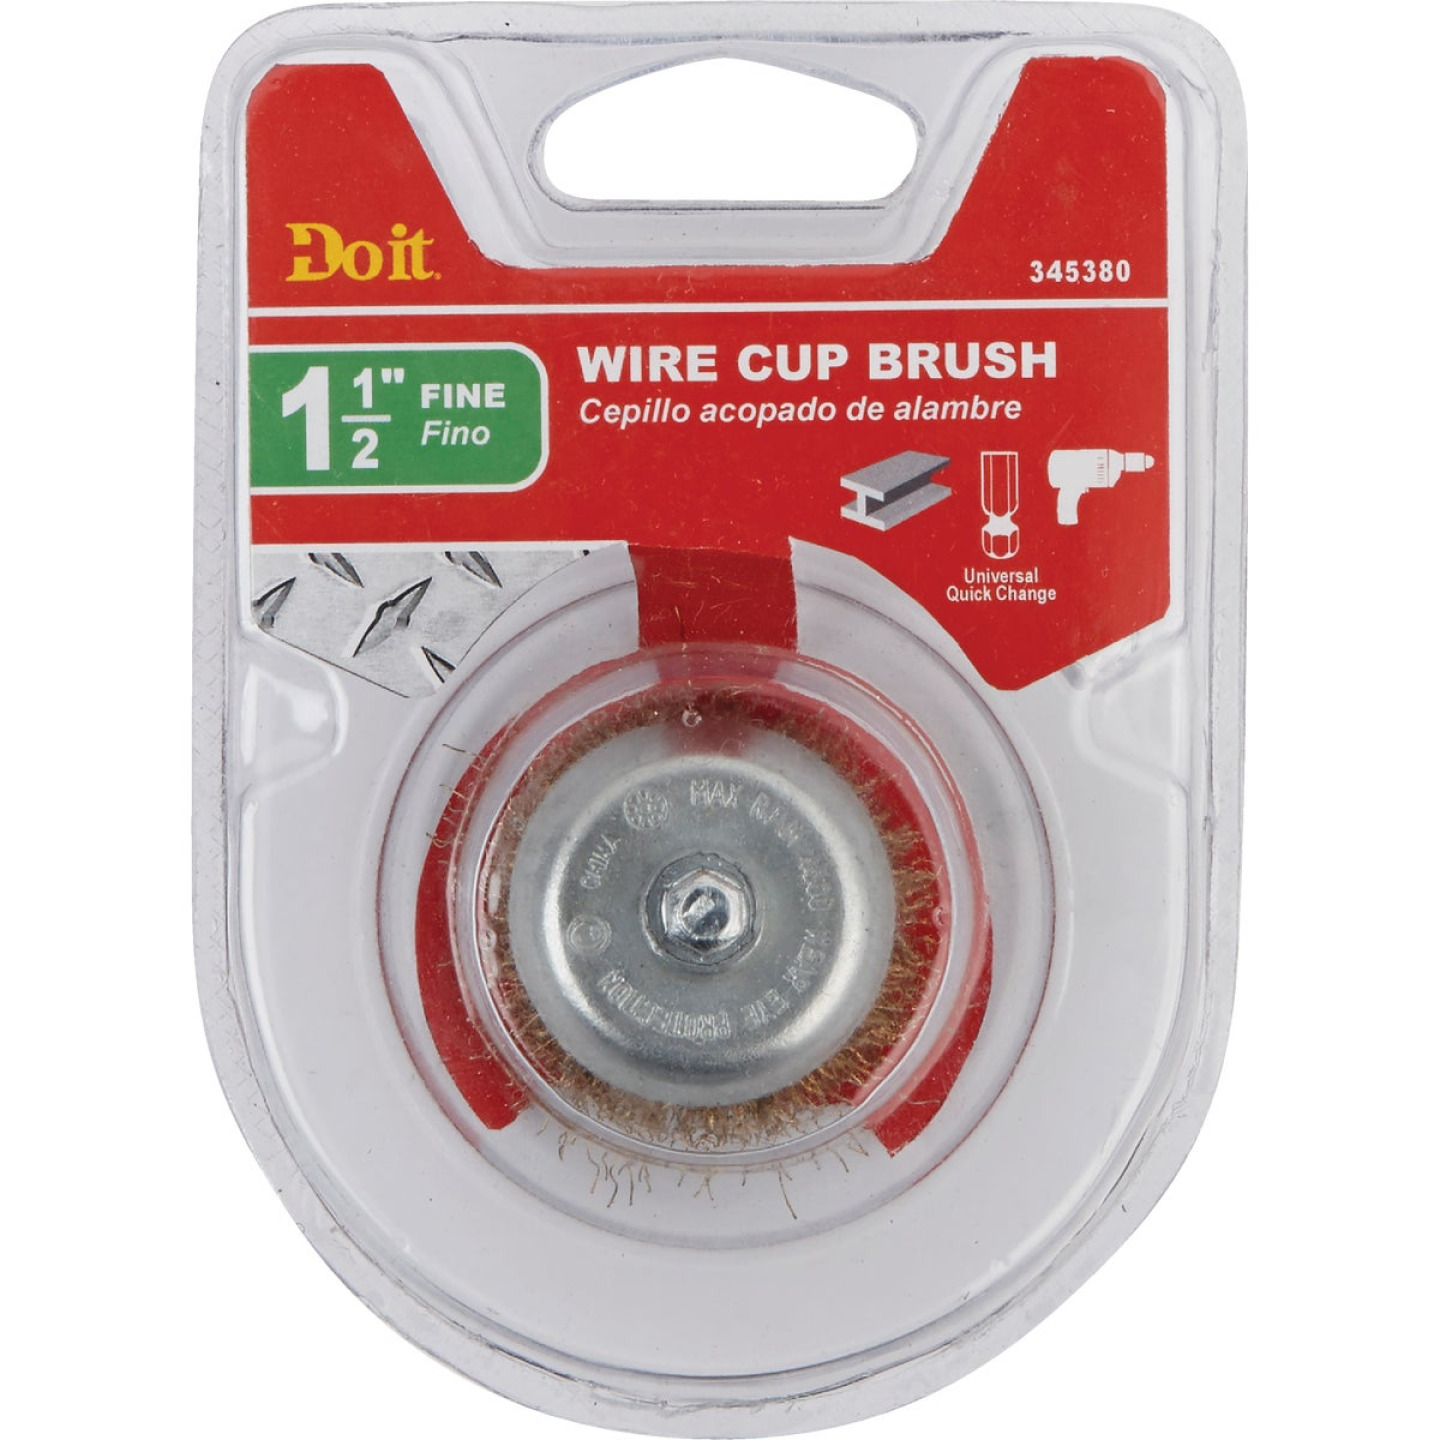 Do it 1-1/2 In. Fine Drill-Mounted Wire Brush Image 2